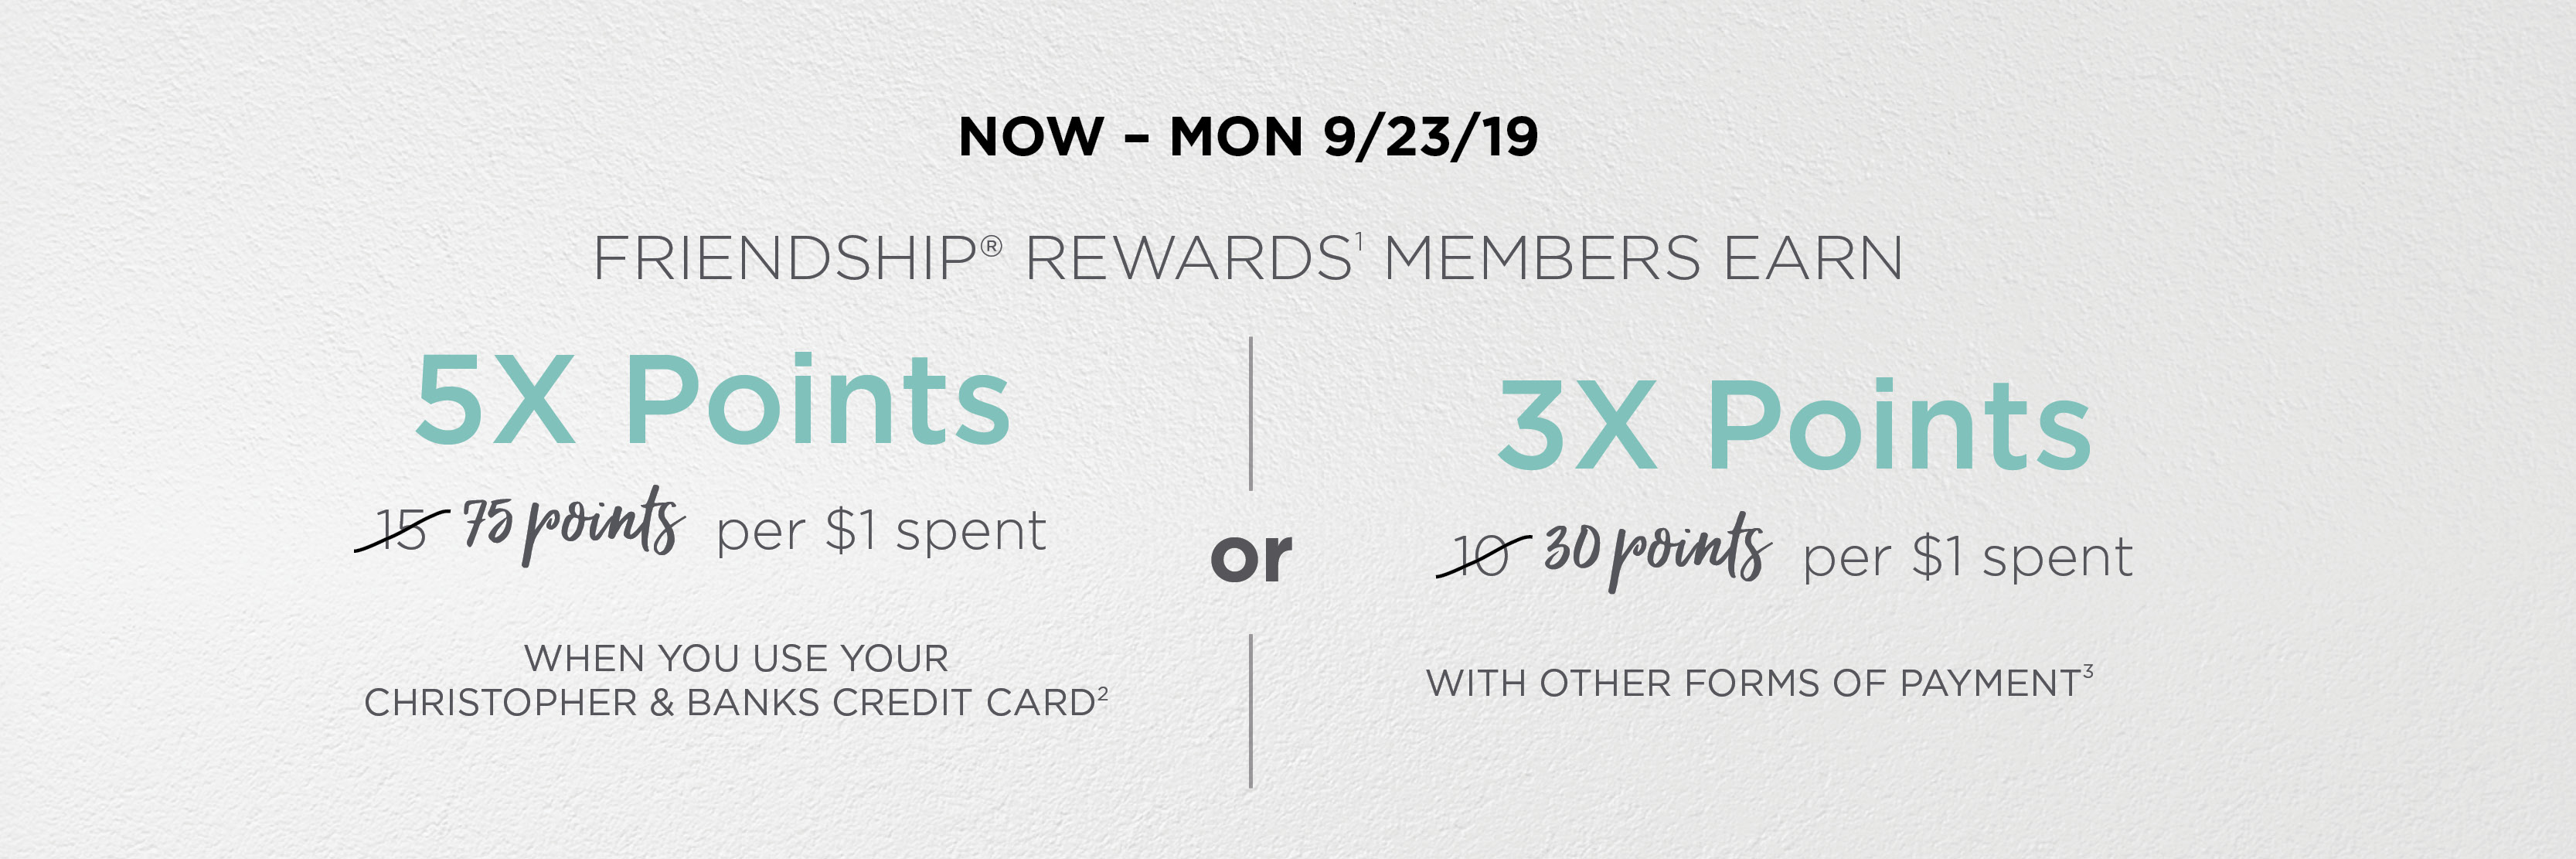 Now through 9/23/19 earn 5X Friendship Rewards Points on every purchase when you use your Chrisptopher and Banks credit card, or earn 3x points with any other form of payment.